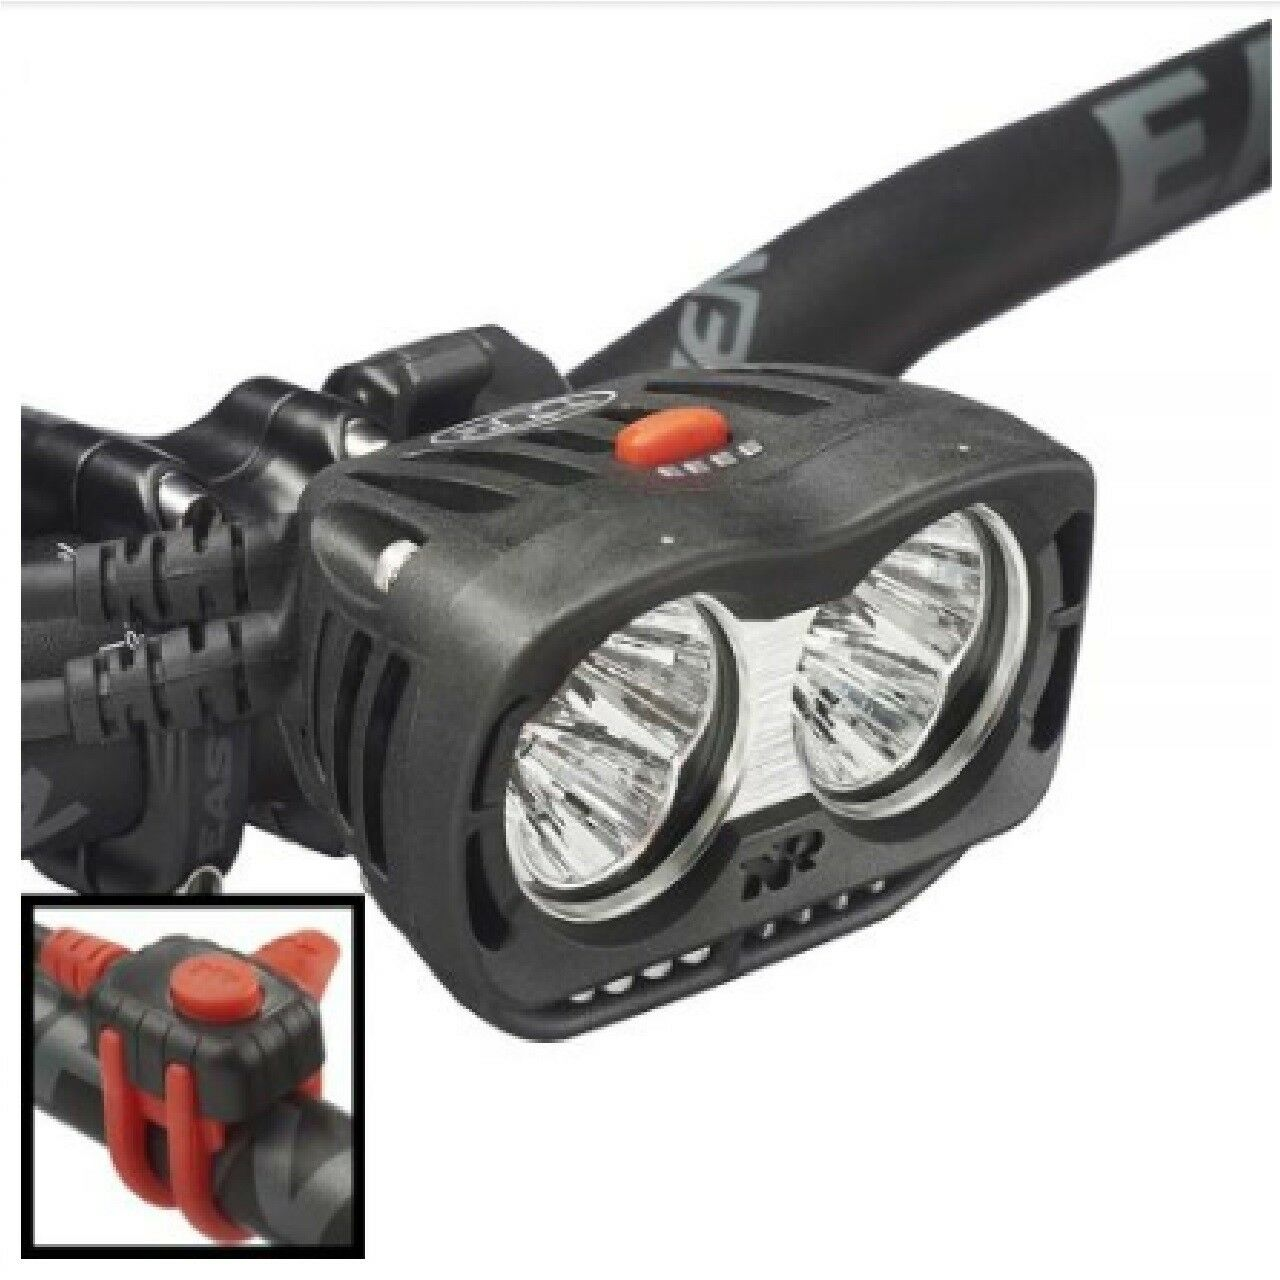 NiteRider PRO 4200 ENDURO REMOTE Cycling Front Light System (6806)